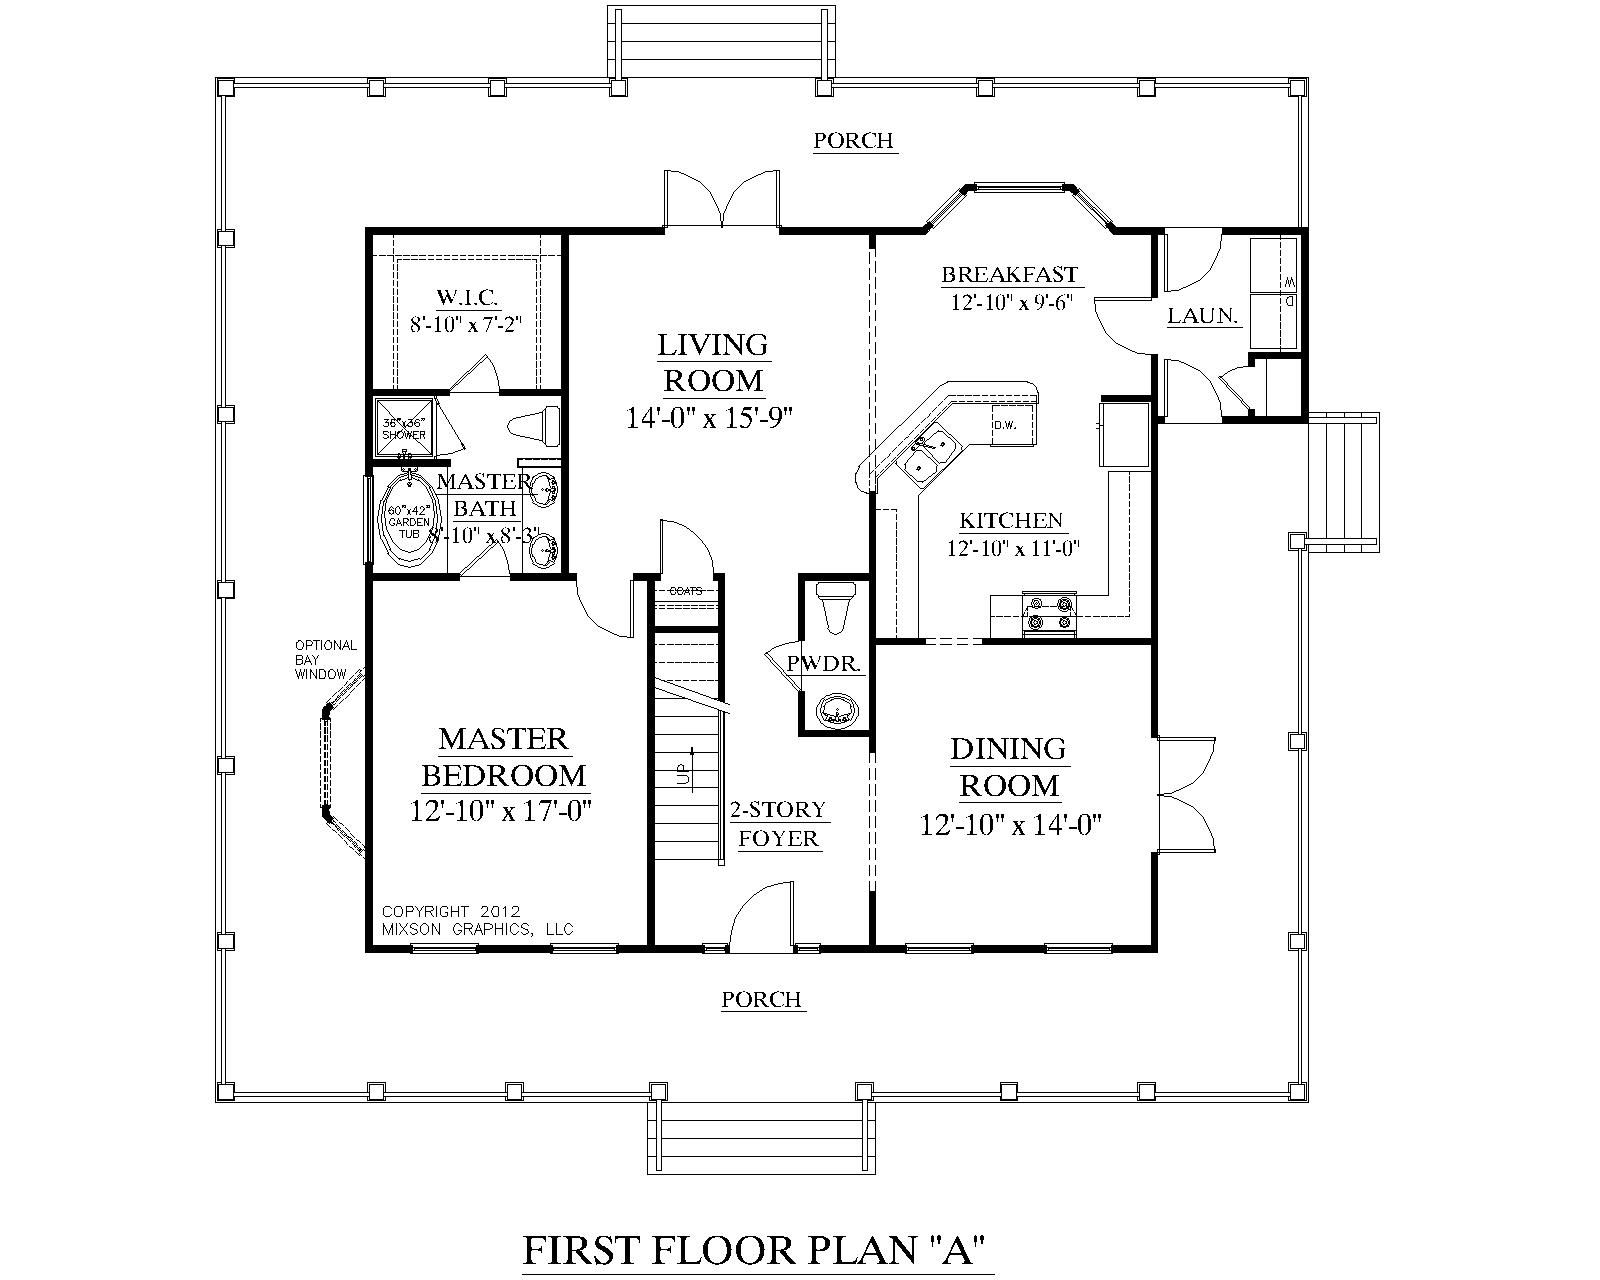 small one bedroom house plans | traditional 1-1/2-story house plan